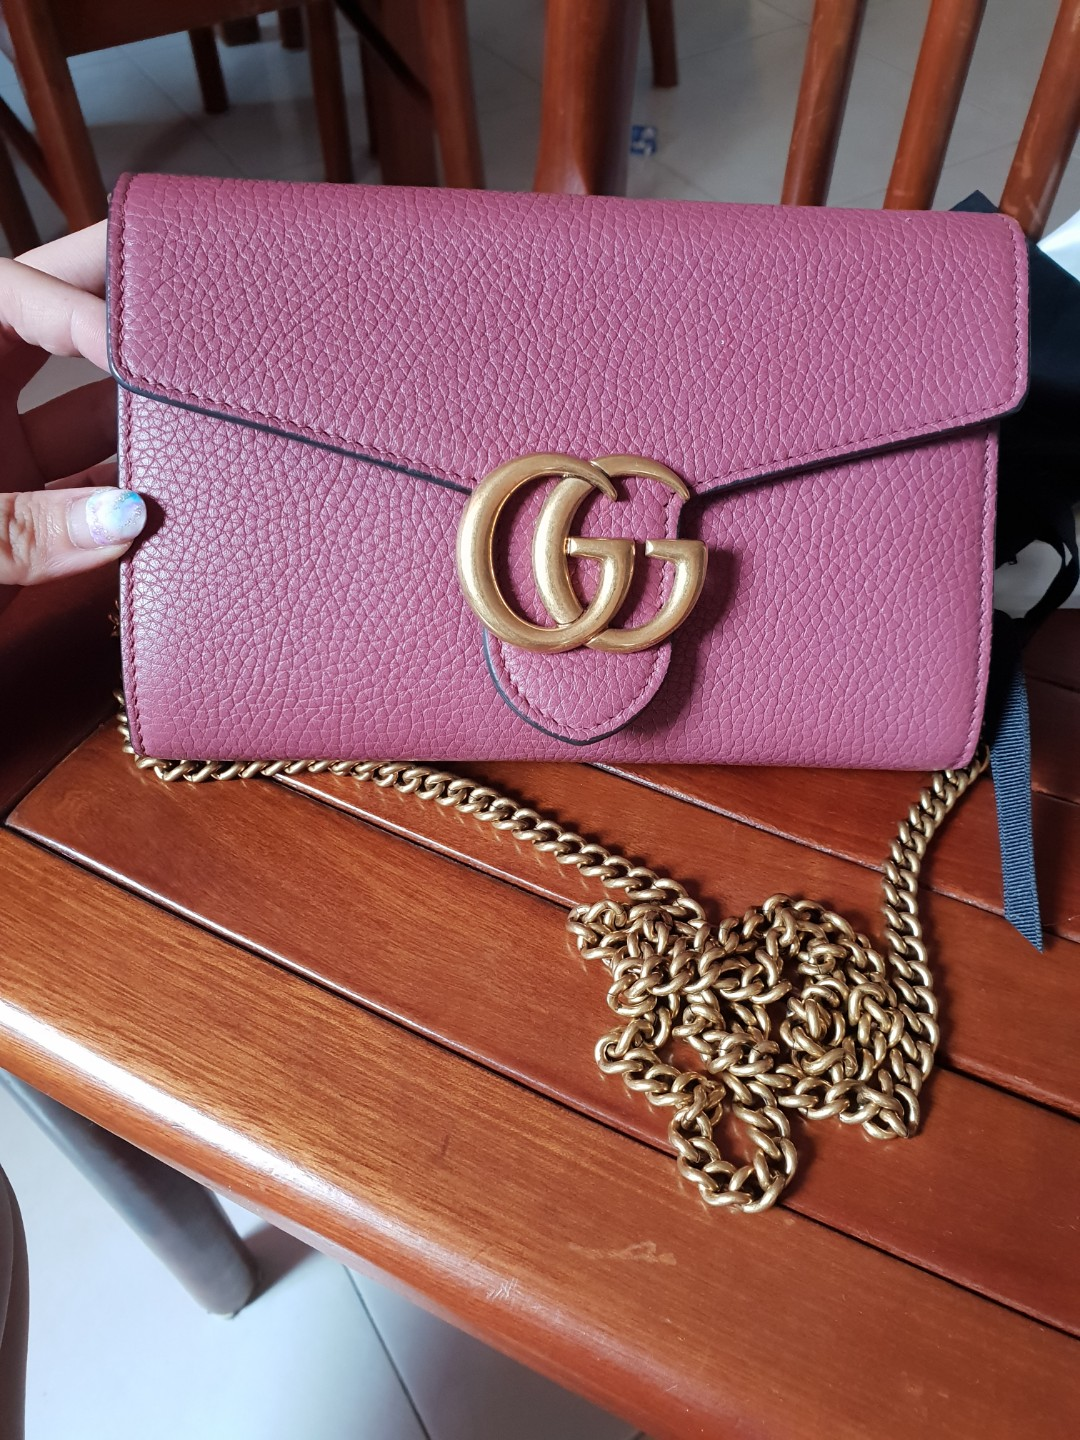 da6d4119540 Like new Gucci Marmont wallet on chain